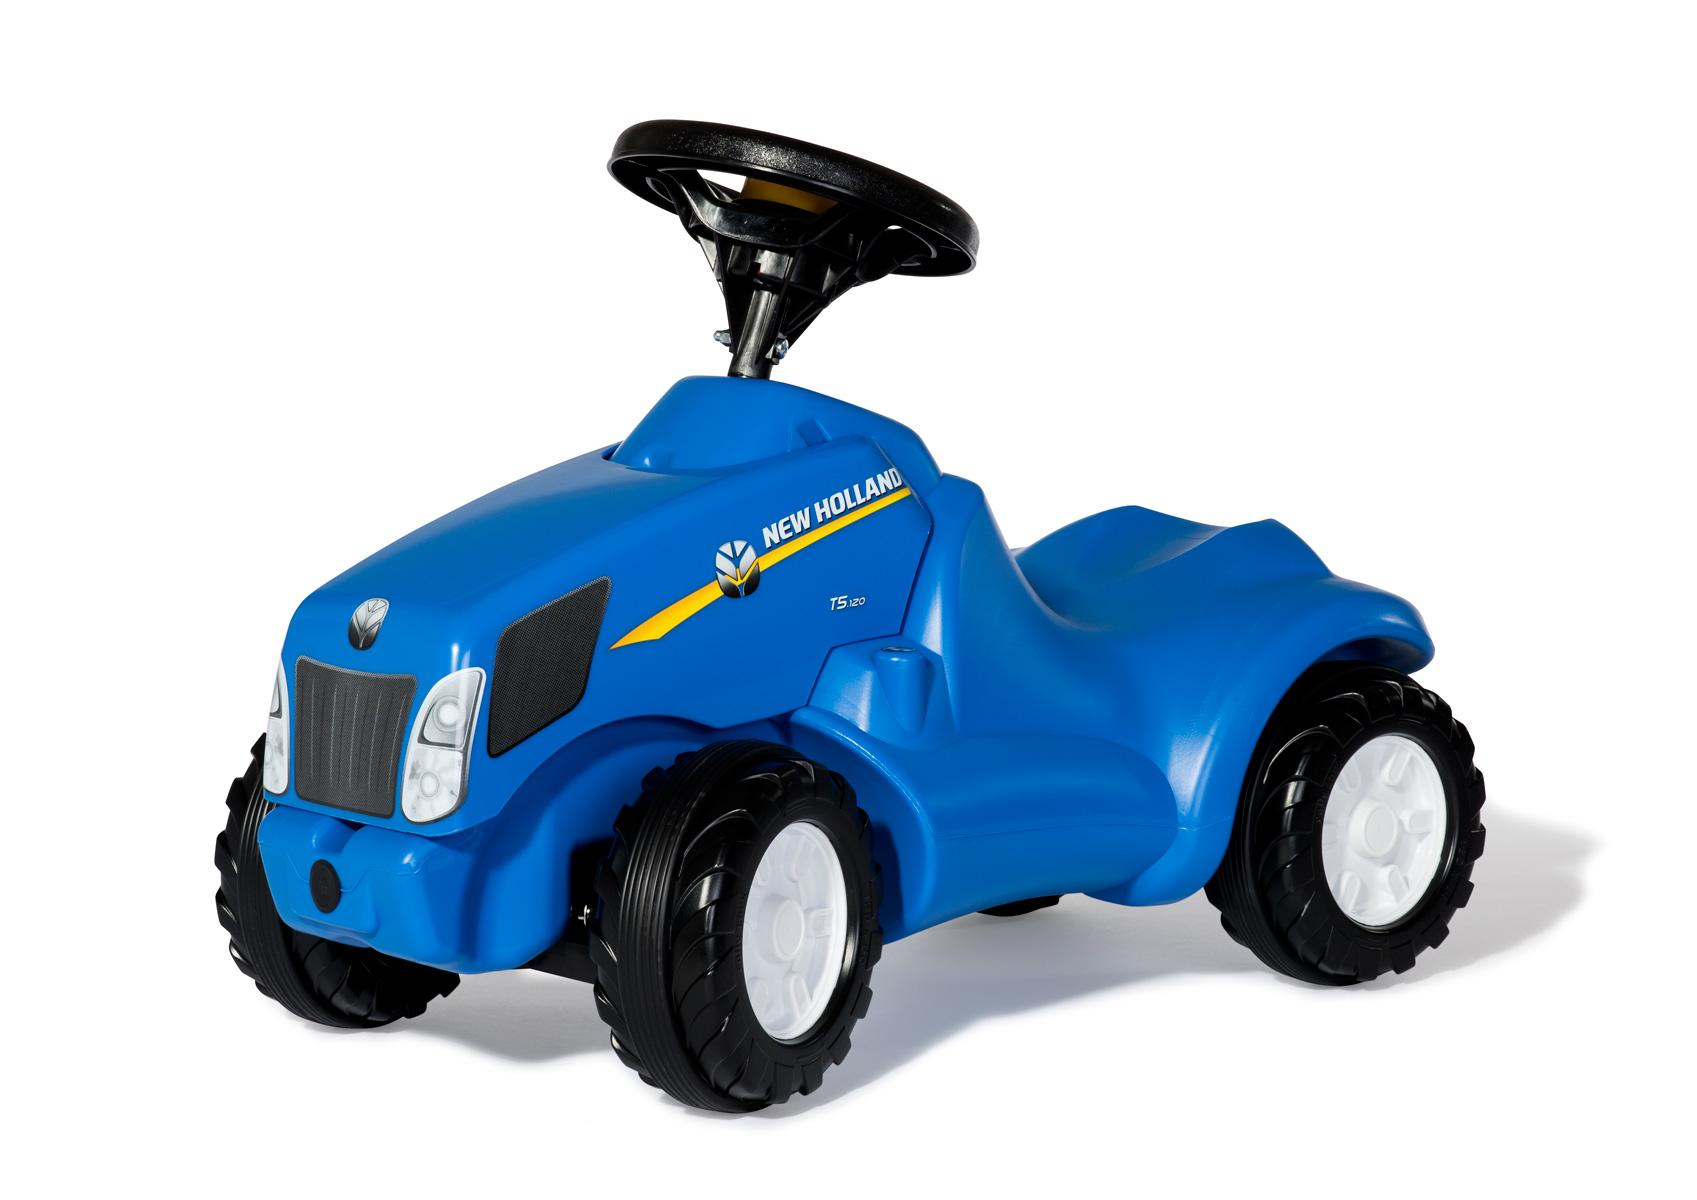 Rolly Minitrac New Holland Tractor Toymaster Ballina